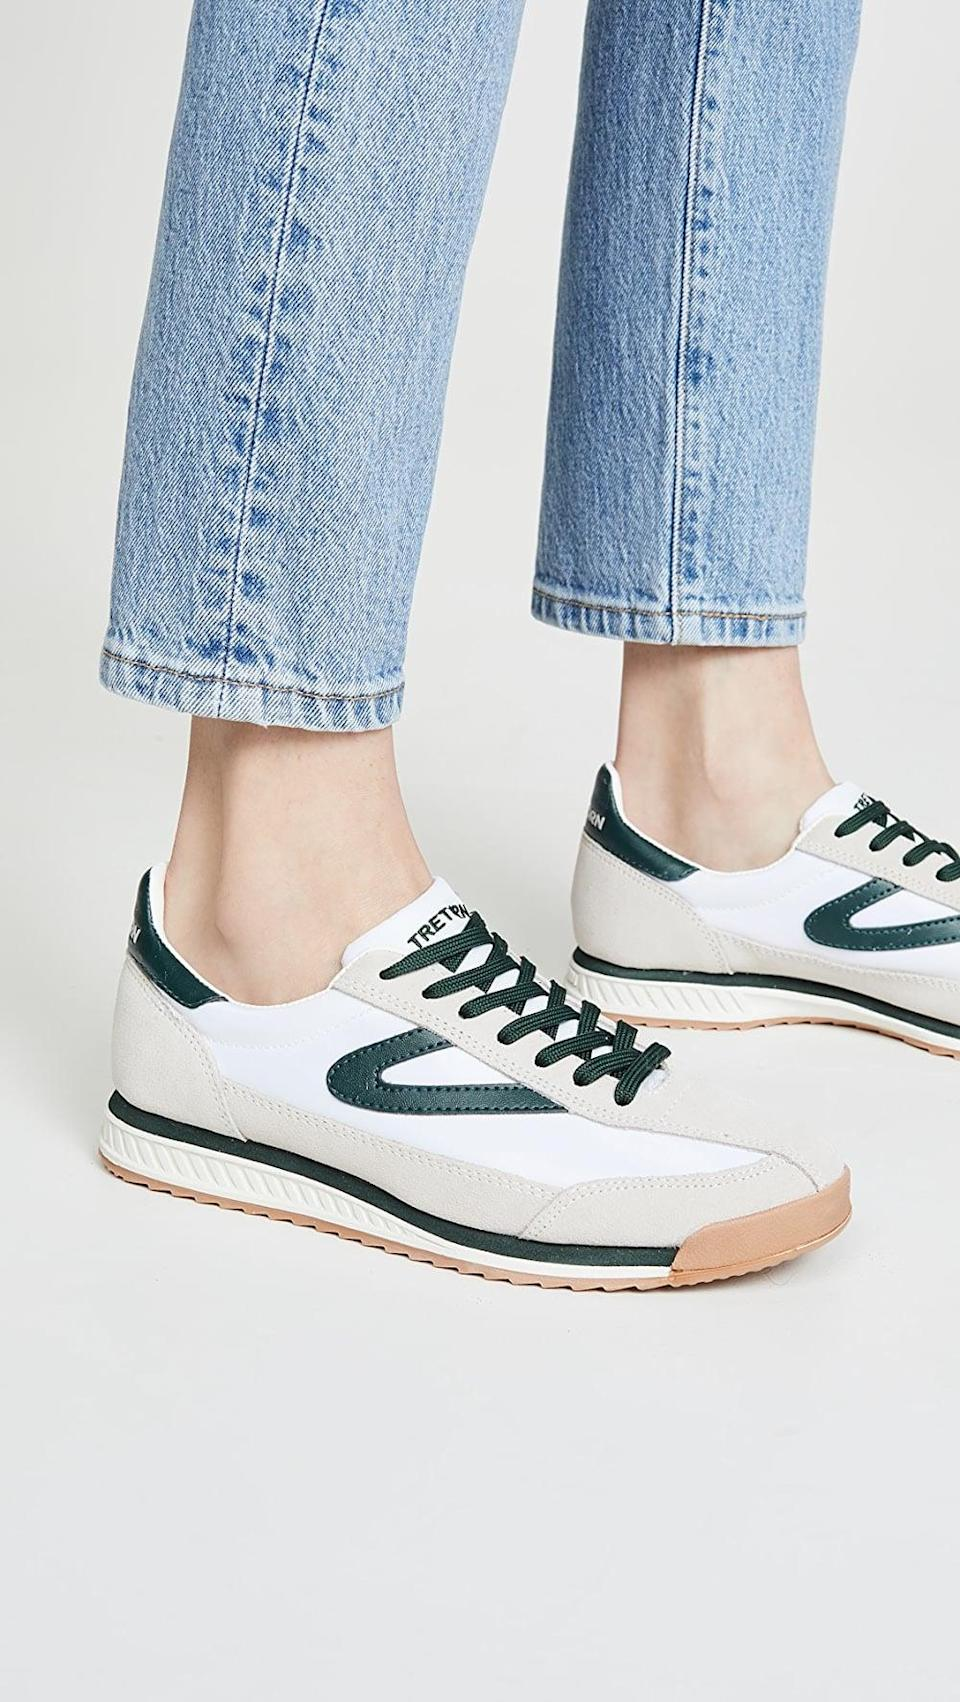 "<p>You can wear these <a href=""https://www.popsugar.com/buy/Tretorn-Rawlins-8-Sneakers-568285?p_name=Tretorn%20Rawlins%208%20Sneakers&retailer=shopbop.com&pid=568285&price=85&evar1=fit%3Aus&evar9=45192674&evar98=https%3A%2F%2Fwww.popsugar.com%2Ffitness%2Fphoto-gallery%2F45192674%2Fimage%2F47420180%2FTretorn-Rawlins-8-Sneakers&list1=shopping%2Cshoes%2Csneakers%2Cnike%2Cadidas%2Crunning%20shoes%2Cworkouts%2Capl%2Cfitness%20shopping&prop13=api&pdata=1"" class=""link rapid-noclick-resp"" rel=""nofollow noopener"" target=""_blank"" data-ylk=""slk:Tretorn Rawlins 8 Sneakers"">Tretorn Rawlins 8 Sneakers</a> ($85) with any outfit, for any activity.</p>"